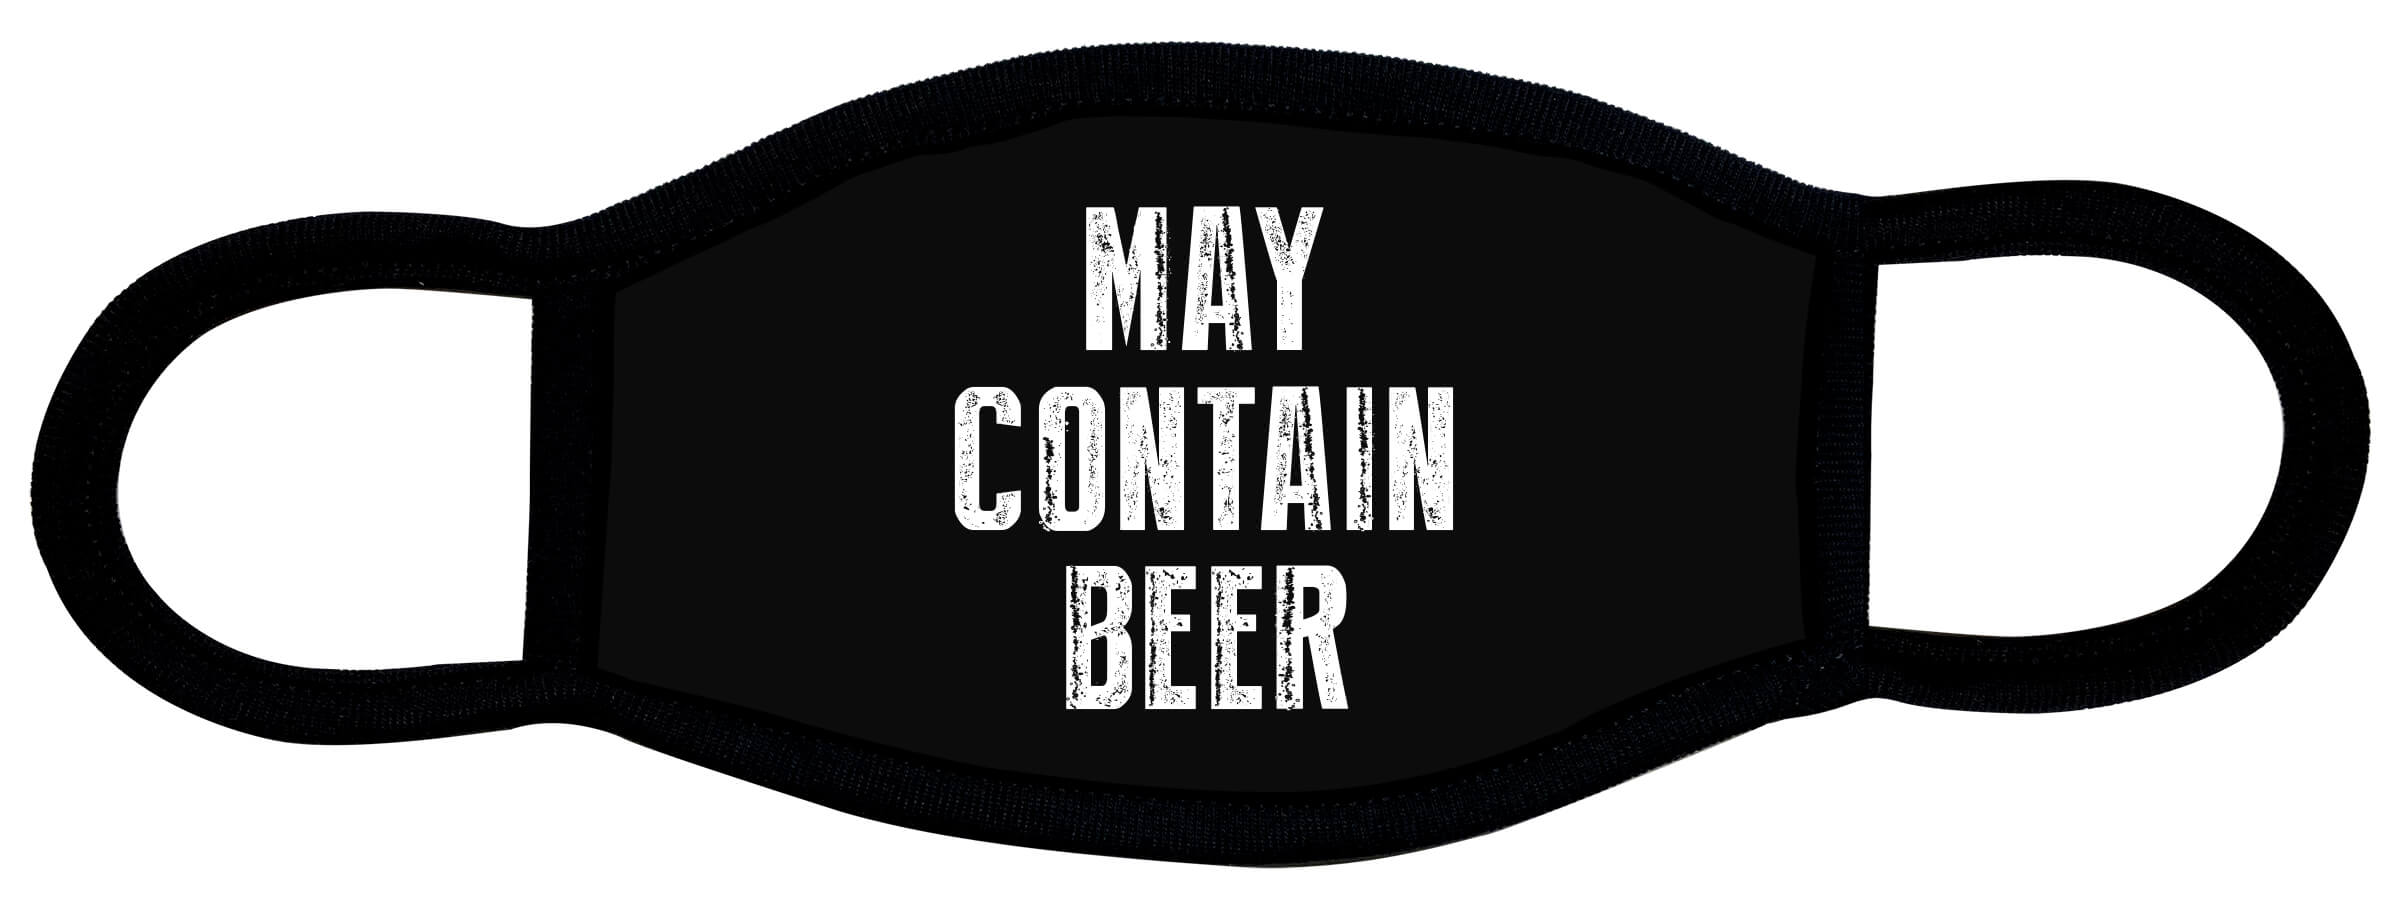 May Contain Beer custom face mask